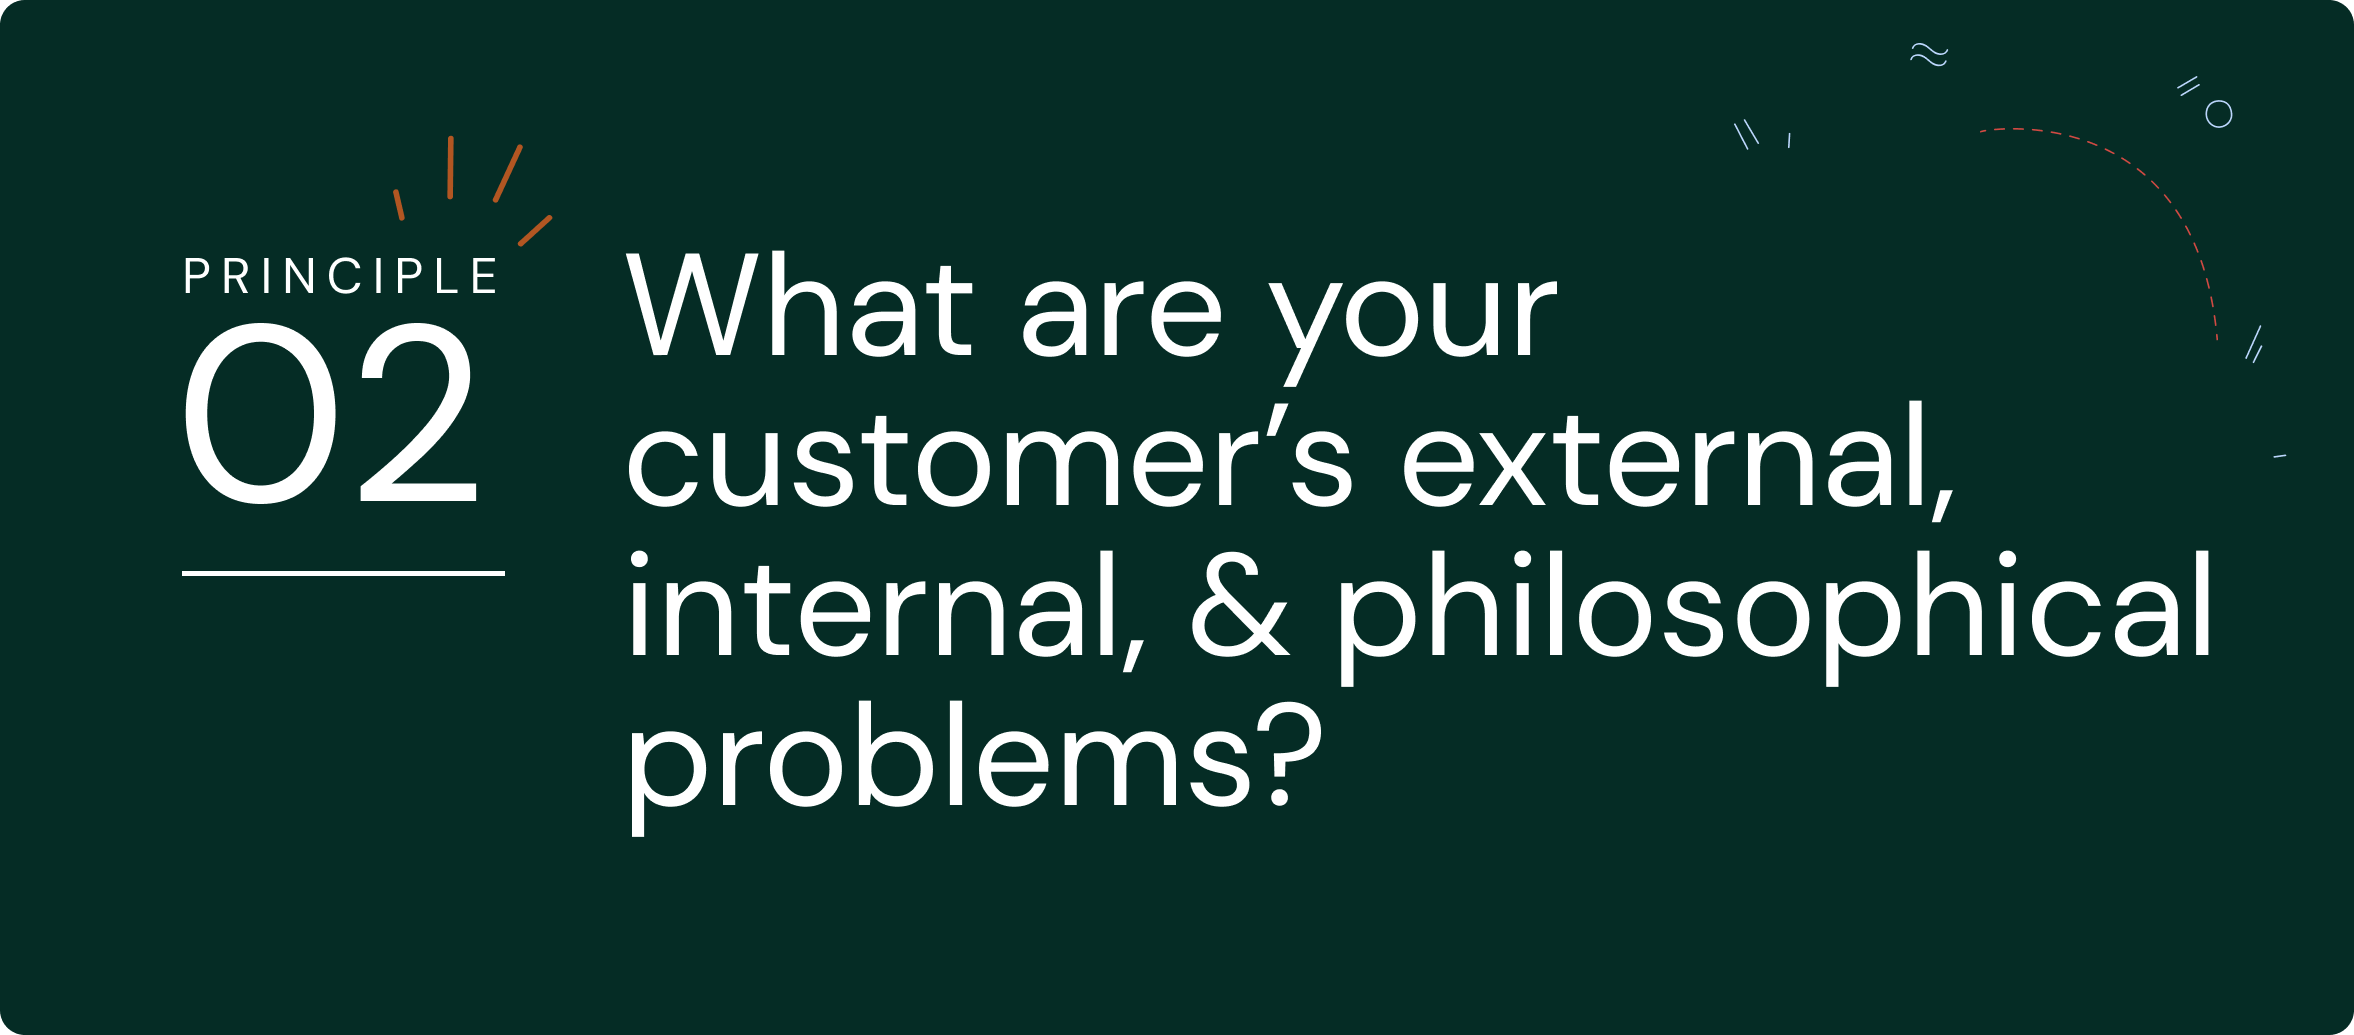 Principle #2 What are your customer's external, internal, and philosophical problems?